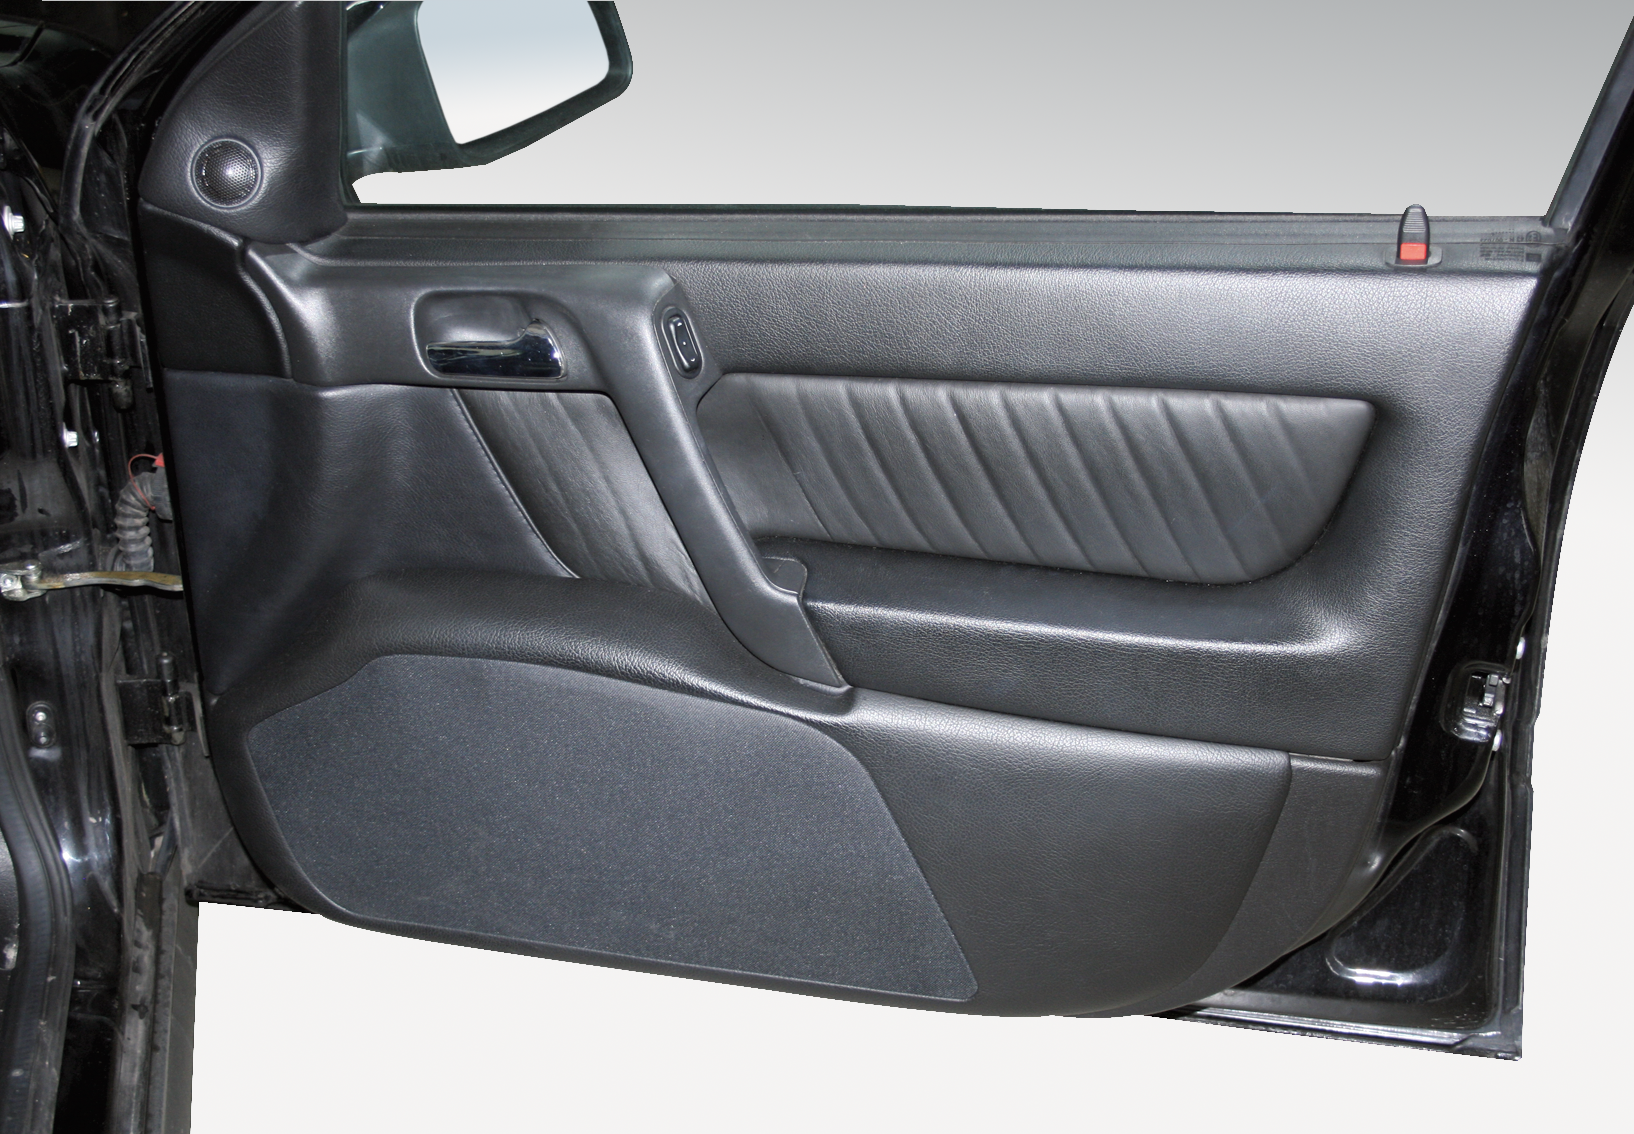 Opel Astra G 2-doors- Doorboards with 3-way soundsystem & Opel Astra G 2-doors- Doorboards with 3-way soundsystem | Jehnert ...